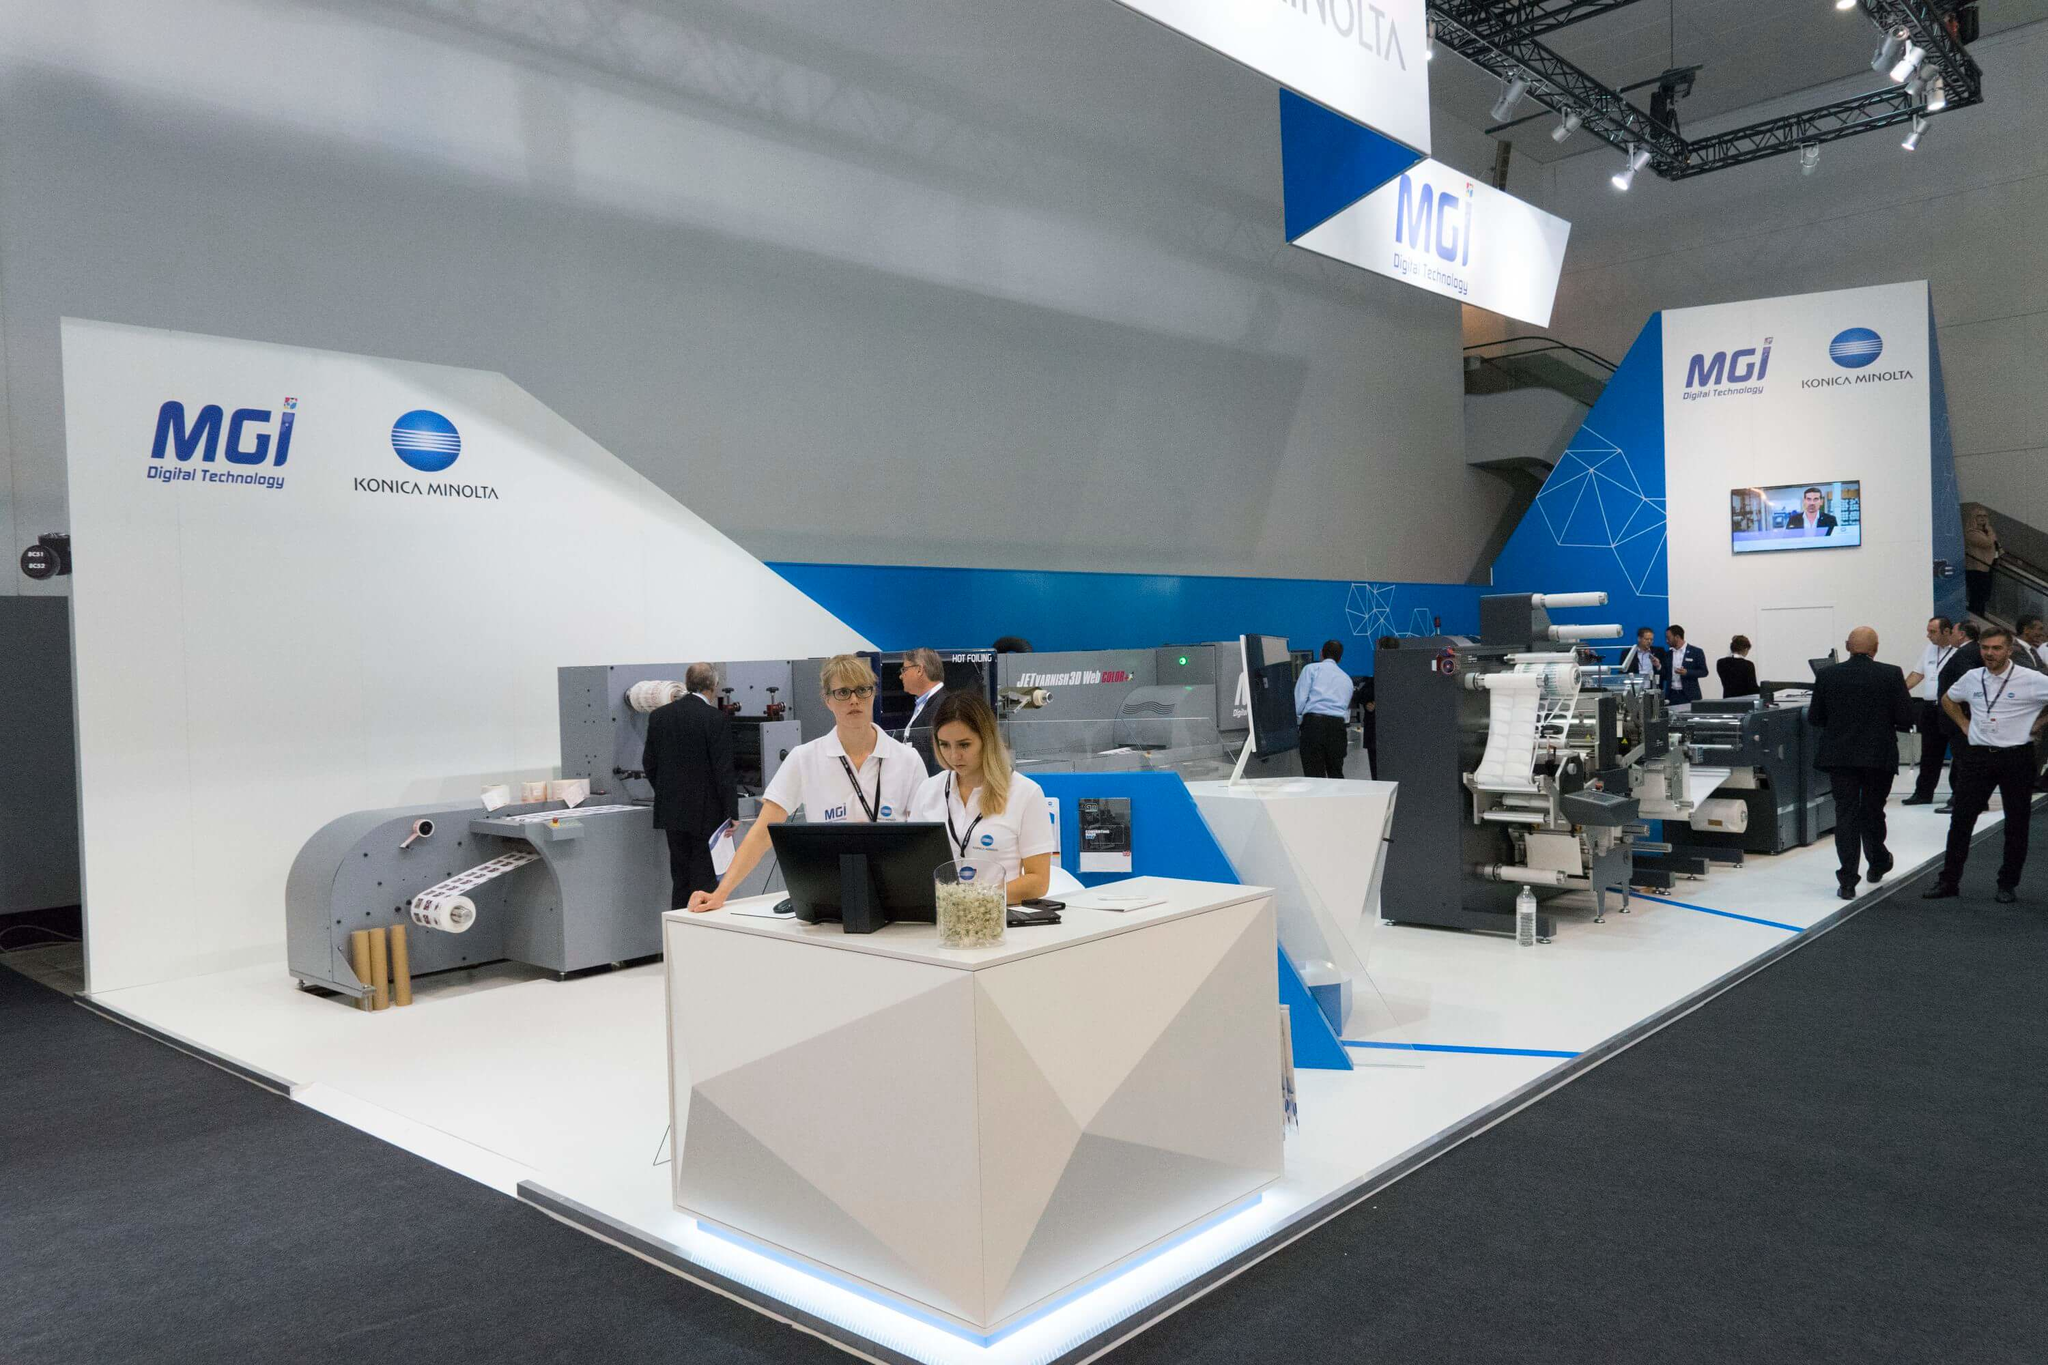 labelexpo 2017 booth images